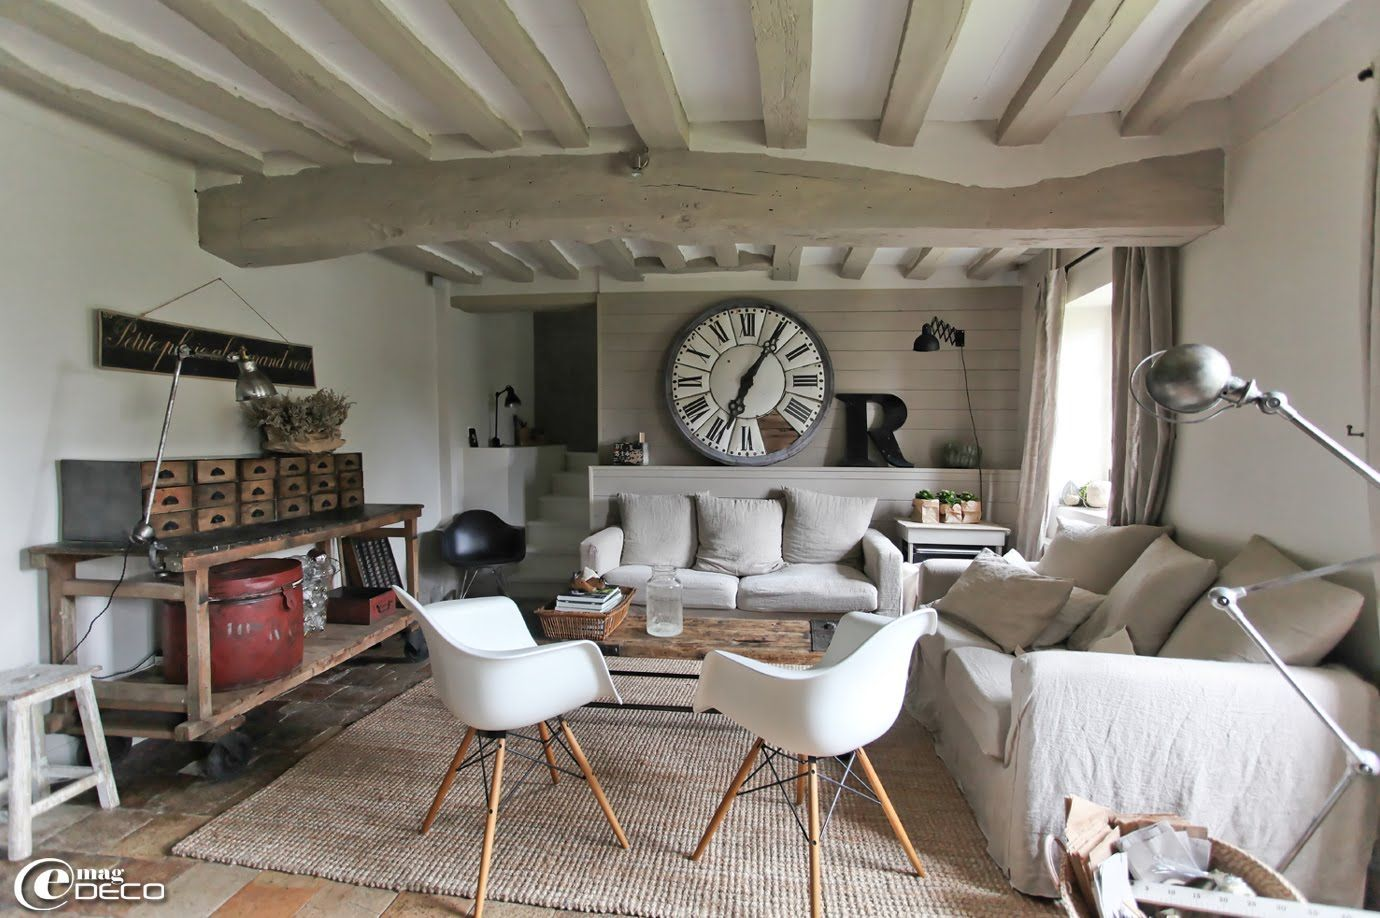 Style De Déco Intérieur love the painted beams. get this effect with liming wax or